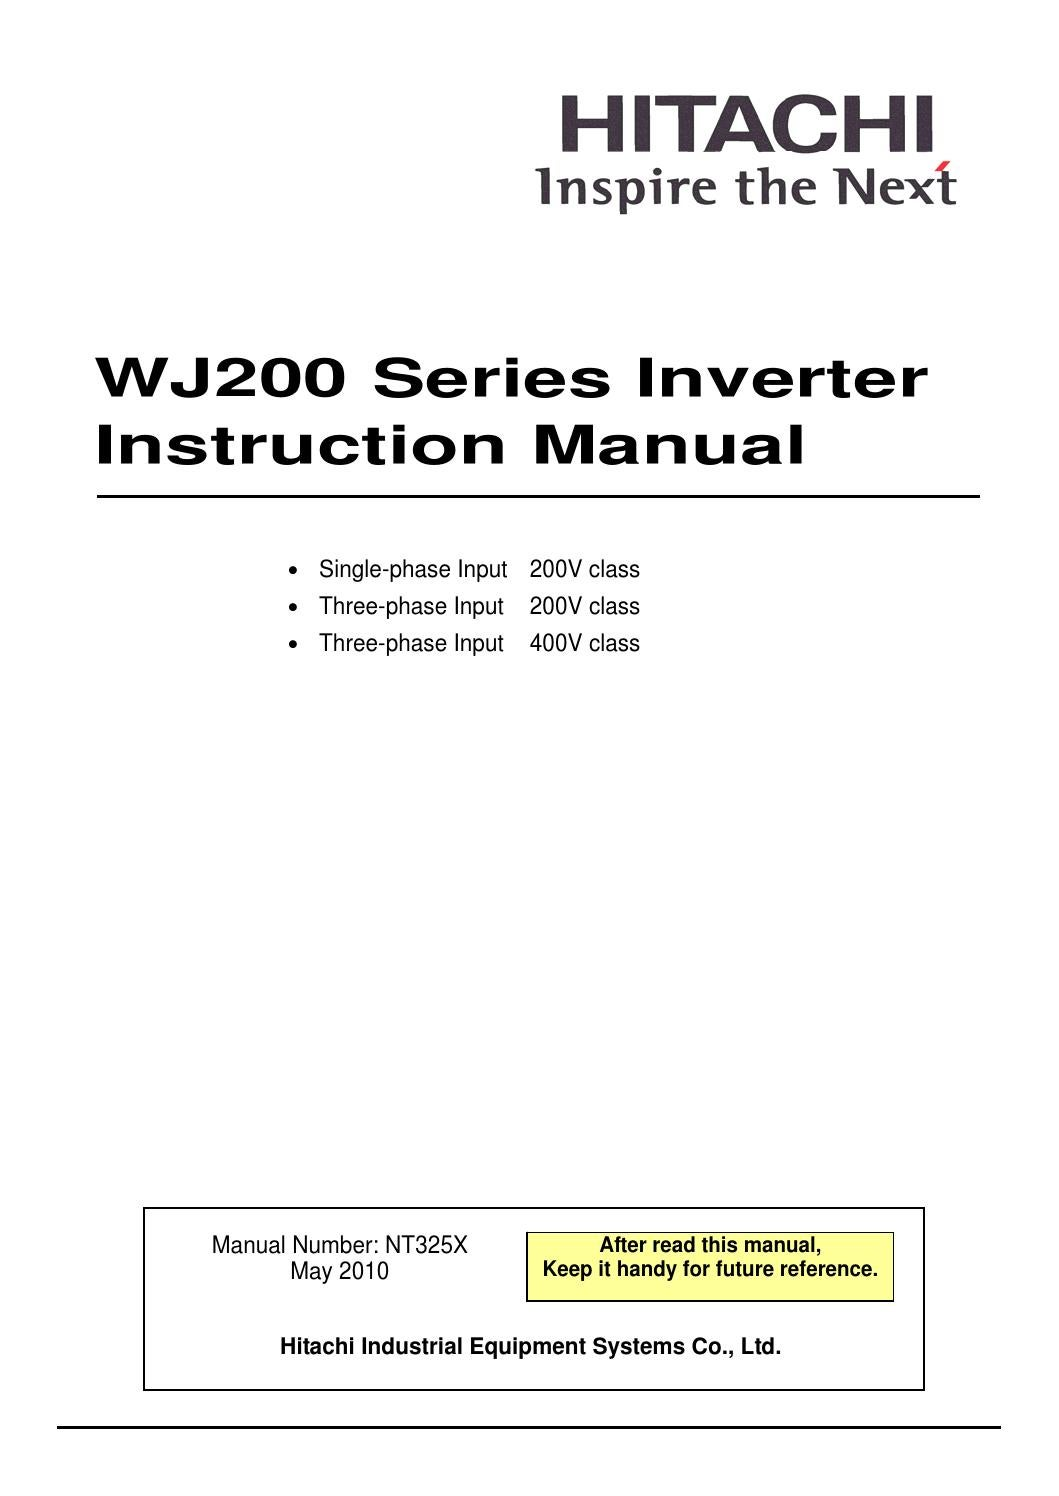 Hitachi Wj200 Series Inverter Instruction Manual By America Compact Fourquadrant Lockin Amplifier Generates Two Analog Outputs Ltd Industrial Components And Equipment Division Issuu